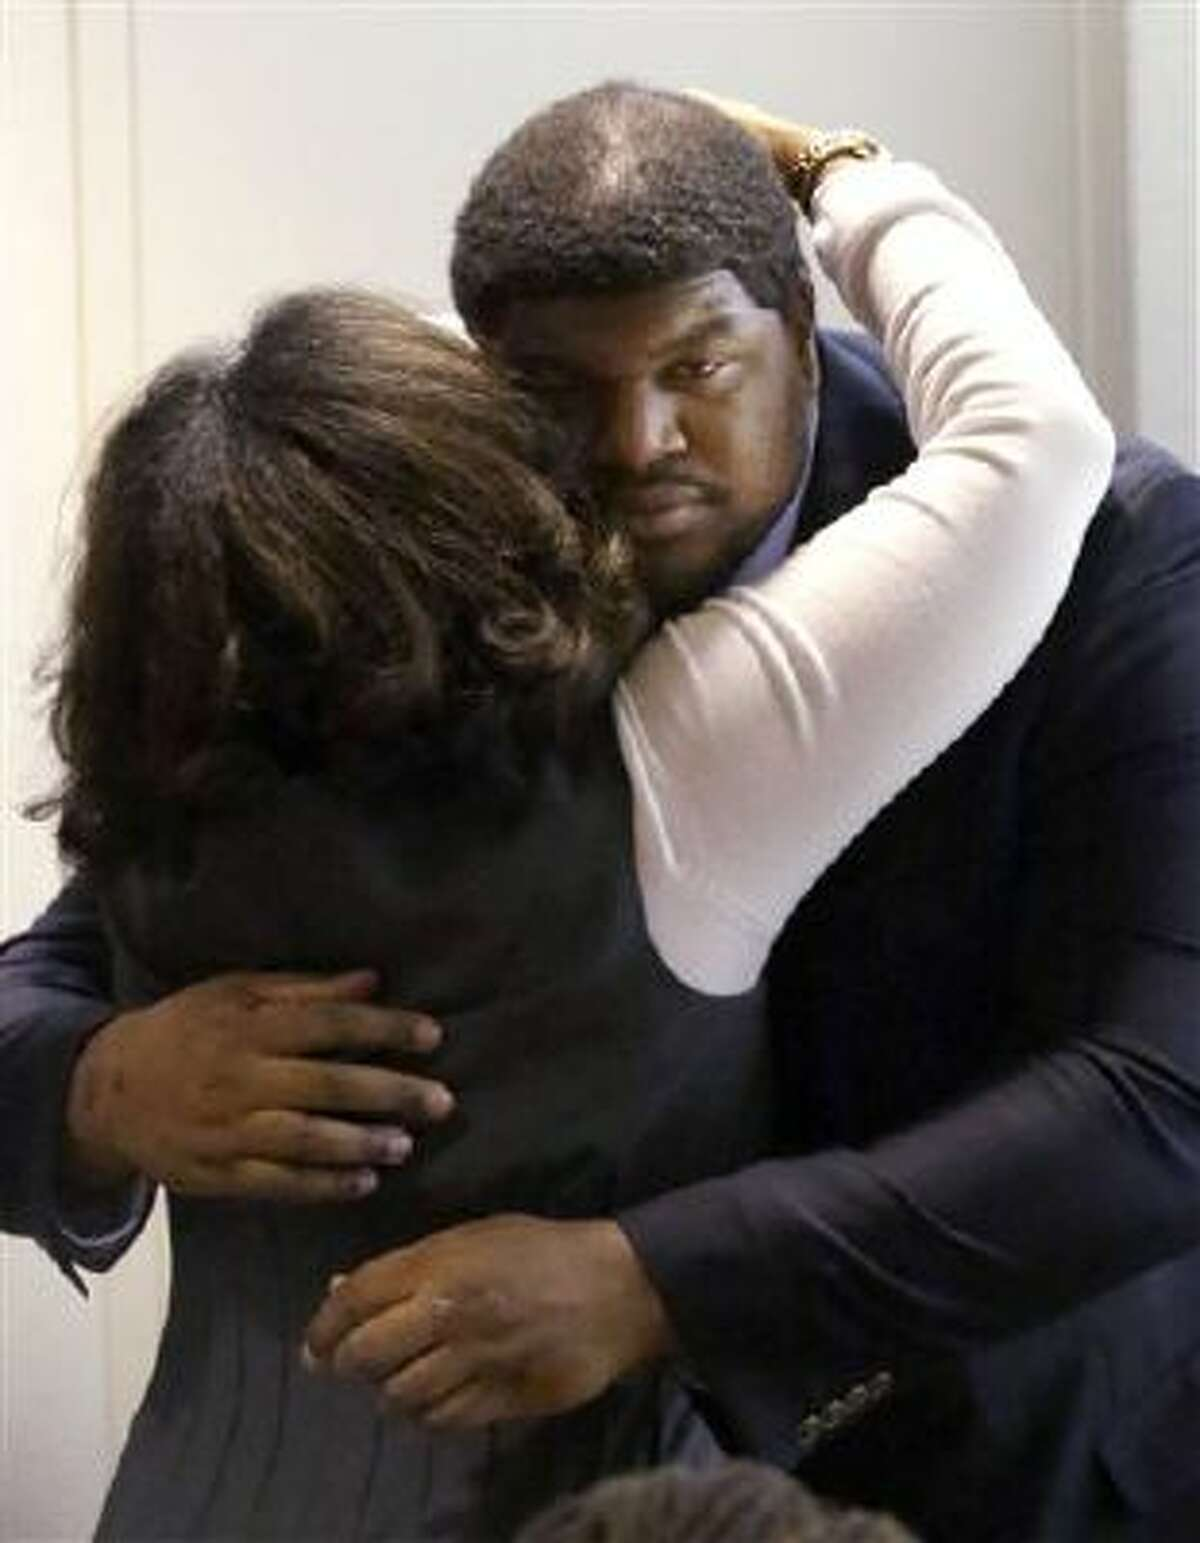 Former Dallas Cowboys NFL football player Josh Brent gets a hug from family after closing arguments in his intoxication manslaughter trial Tuesday, Jan. 21, 2014, in Dallas. The jury has begun deliberating in Brent's intoxication manslaughter trial after lawyers wrapped up their closing arguments Tuesday morning. Prosecutors accuse the former defensive tackle of drunkenly crashing his Mercedes near Dallas during a night out in December 2012, killing his good friend and teammate, Jerry Brown.